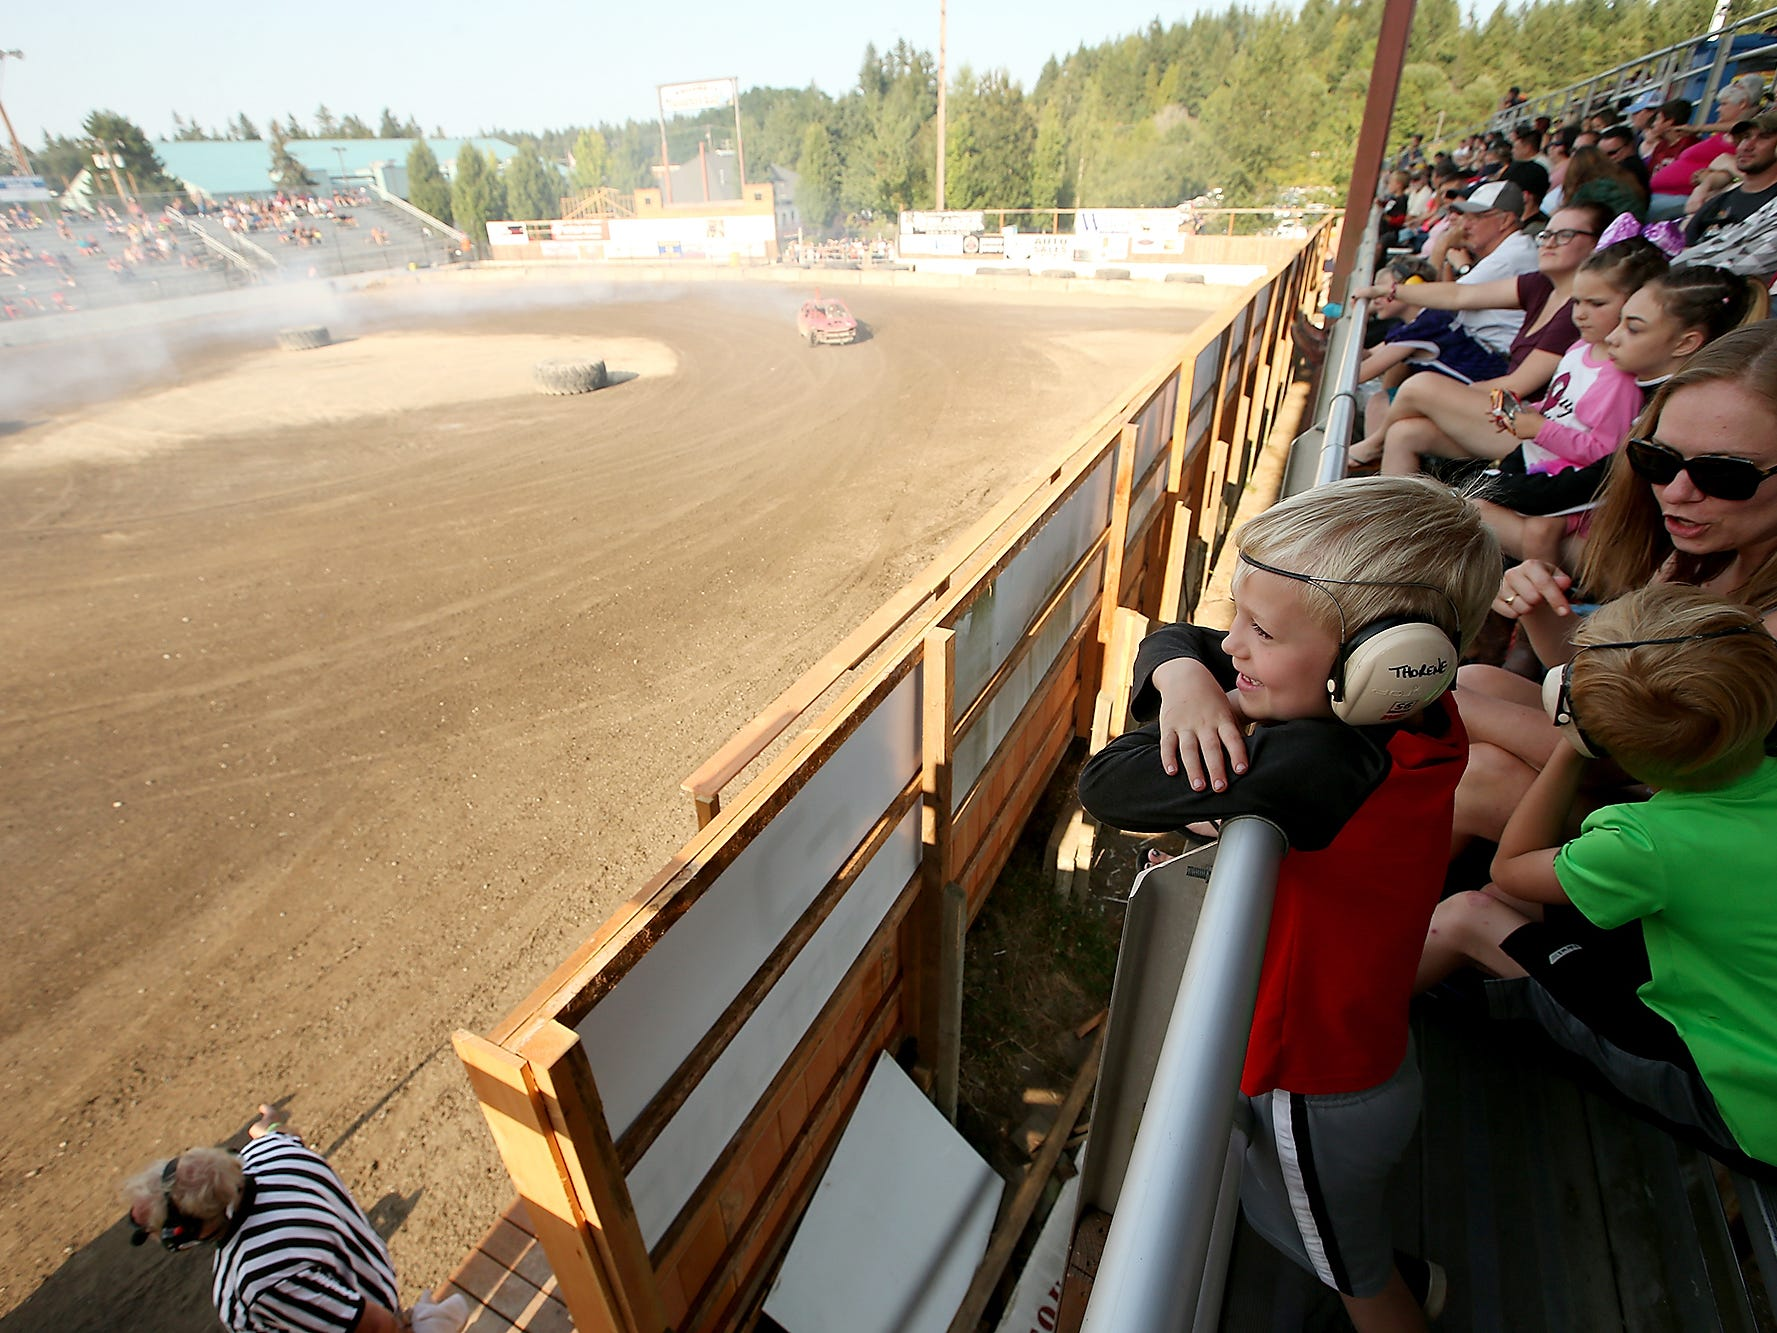 Alex Thorene, 6, of Seabeck, smiles as he watches the Kitsap Destruction Derby from the grandstands of Thunderbird Arena with his brother Connor, 7, and mother Heather on Saturday, July 28, 2018.